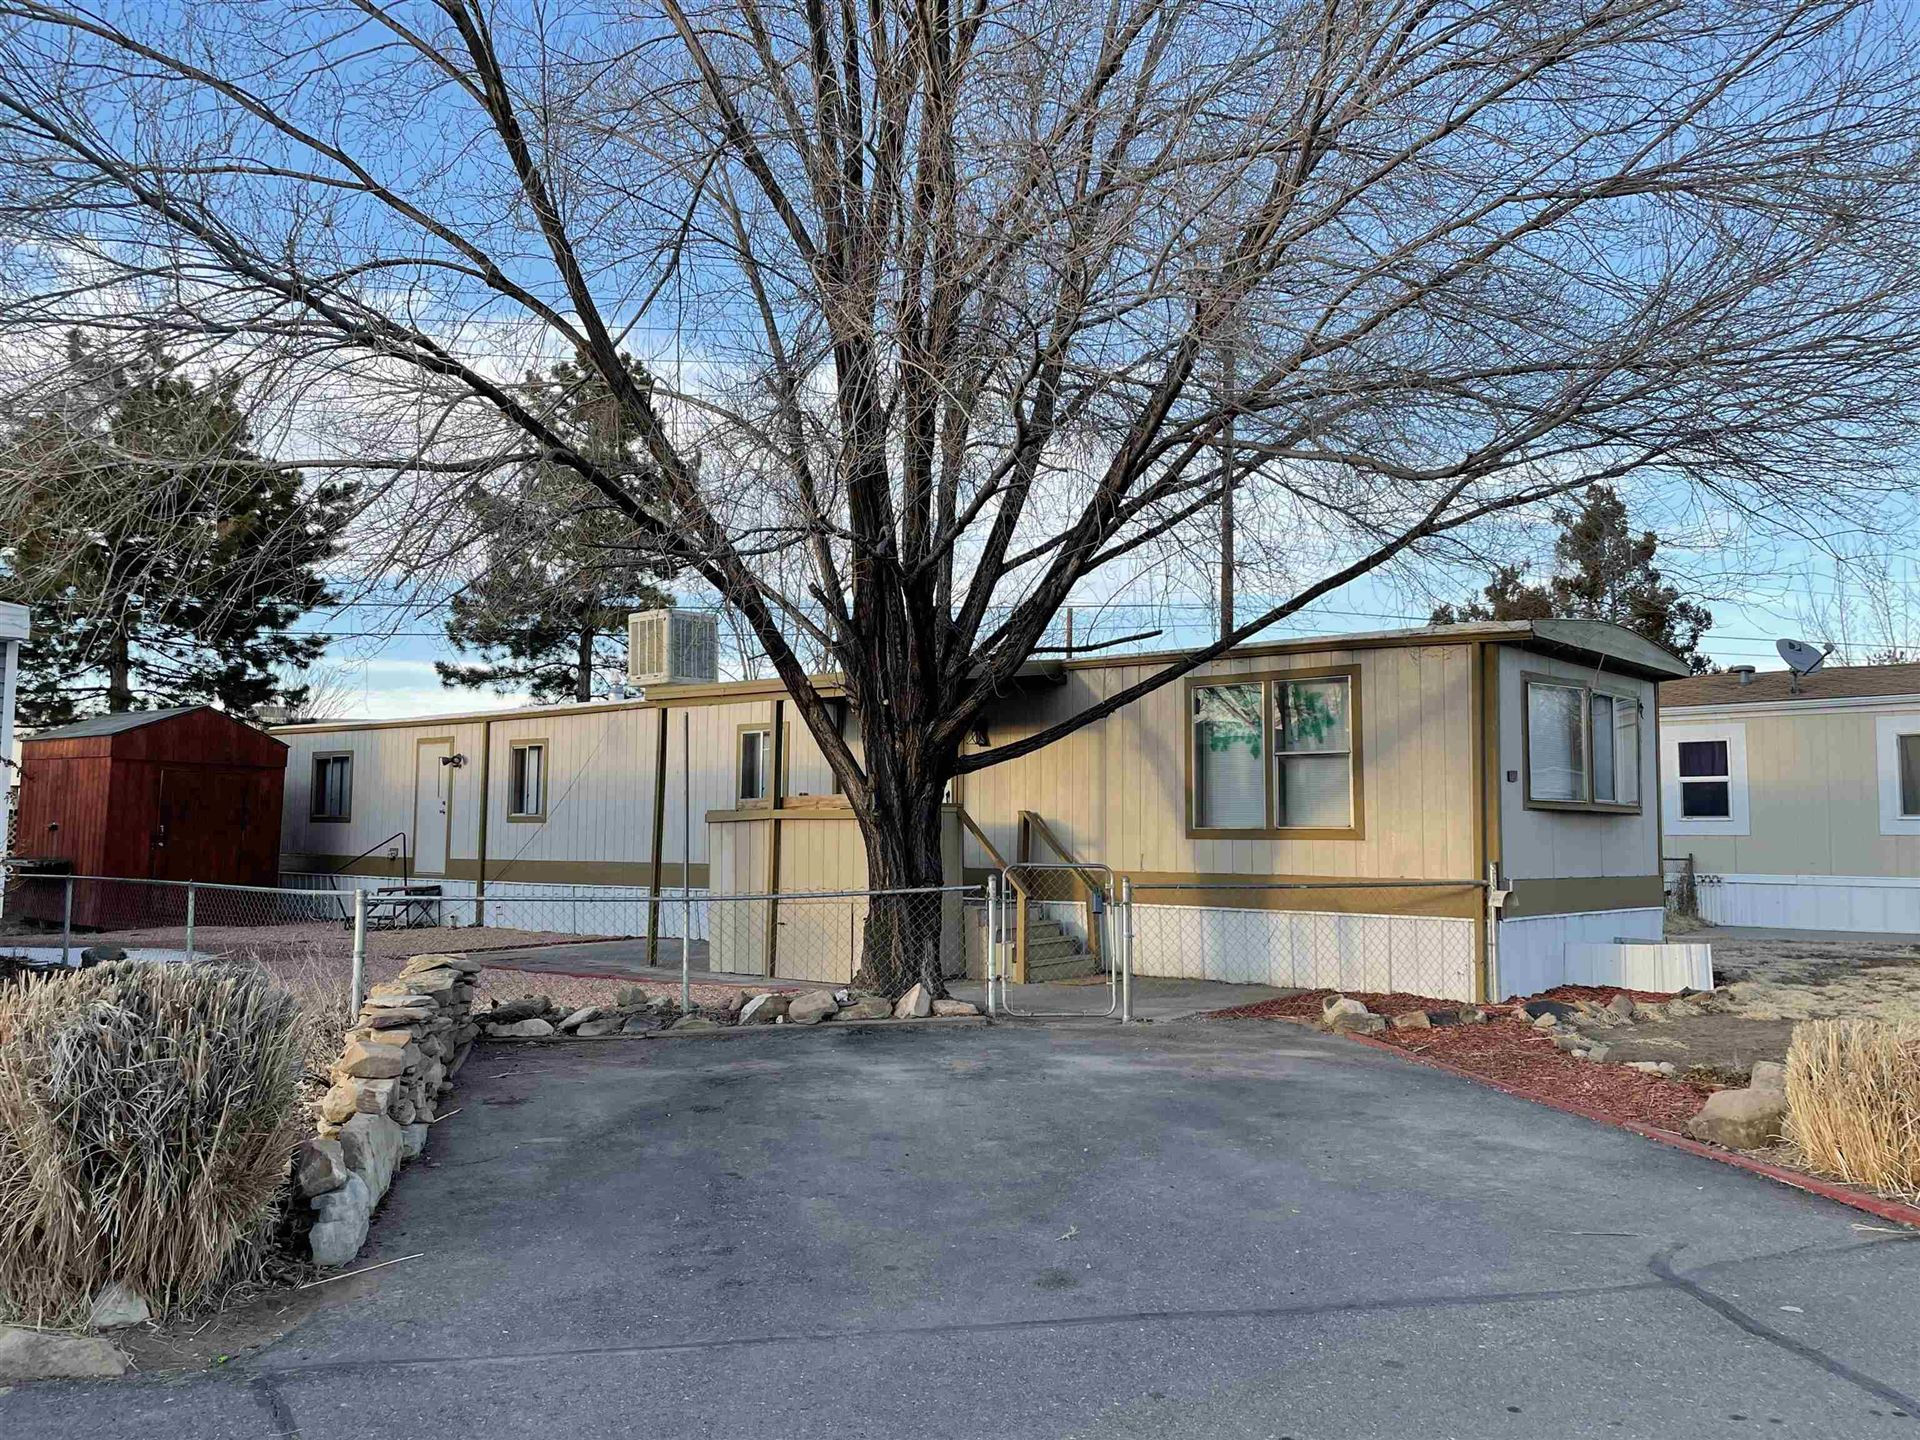 Photo of 585 25 1/2 Road #137, Grand Junction, CO 81505 (MLS # 20215715)